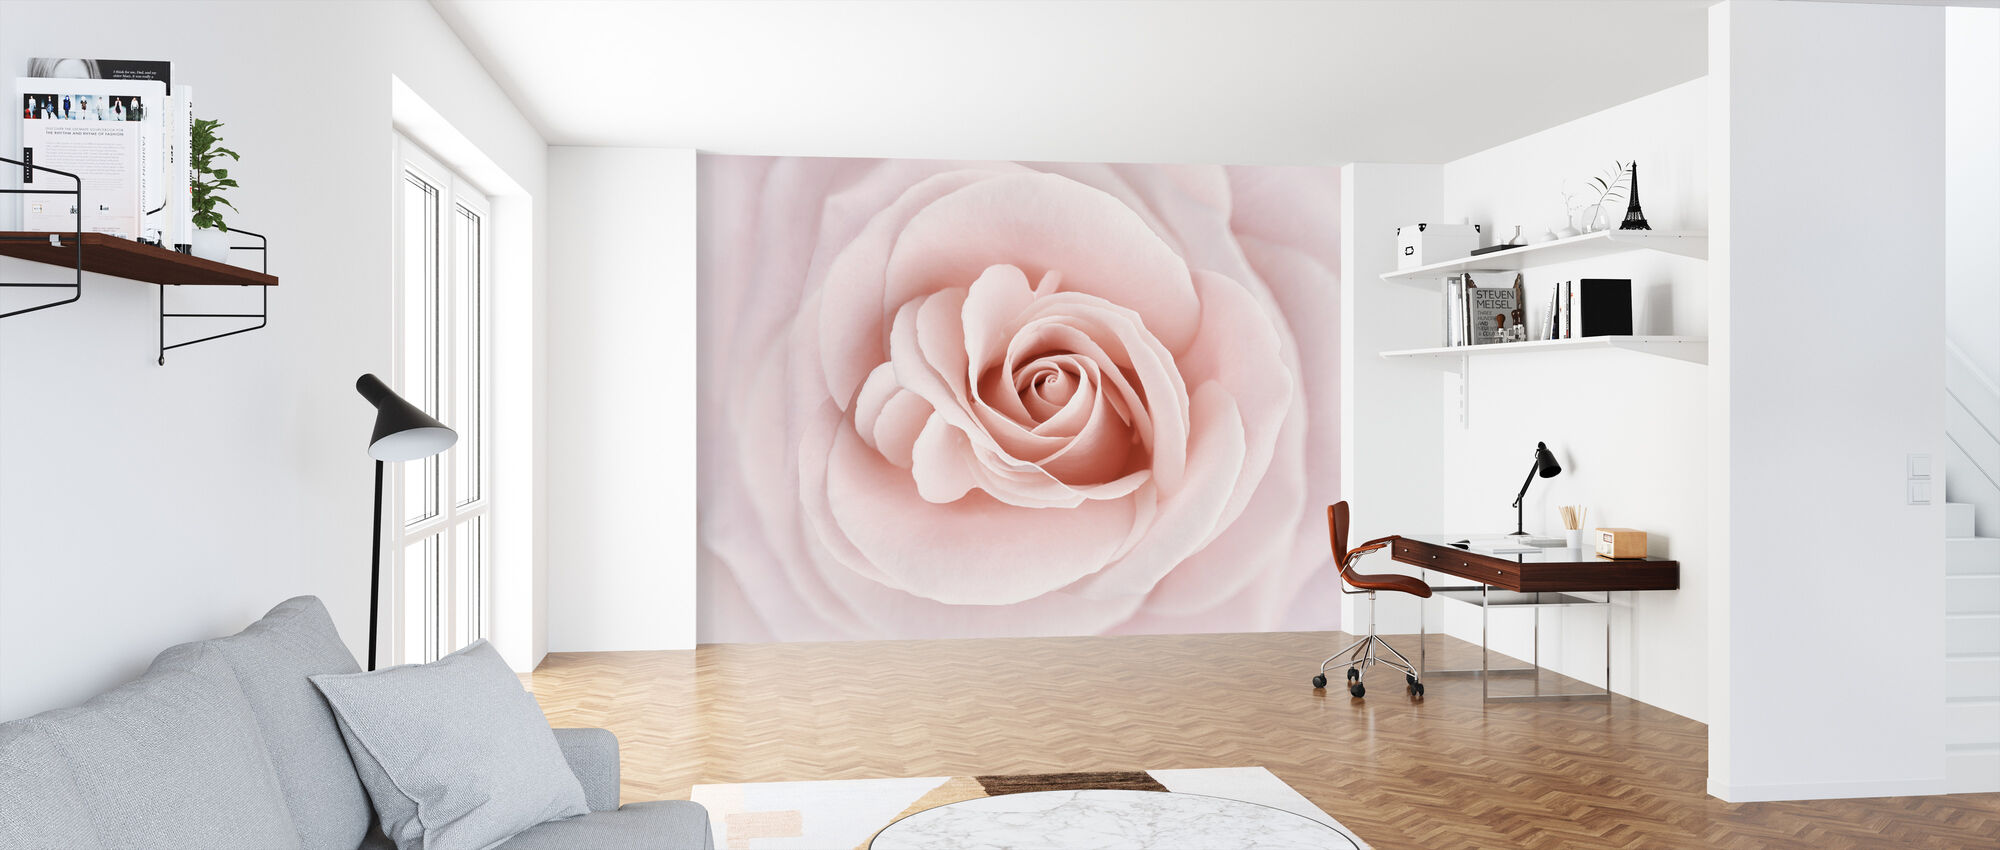 Soft Rose In Peach Pink Shades High Quality Wall Murals